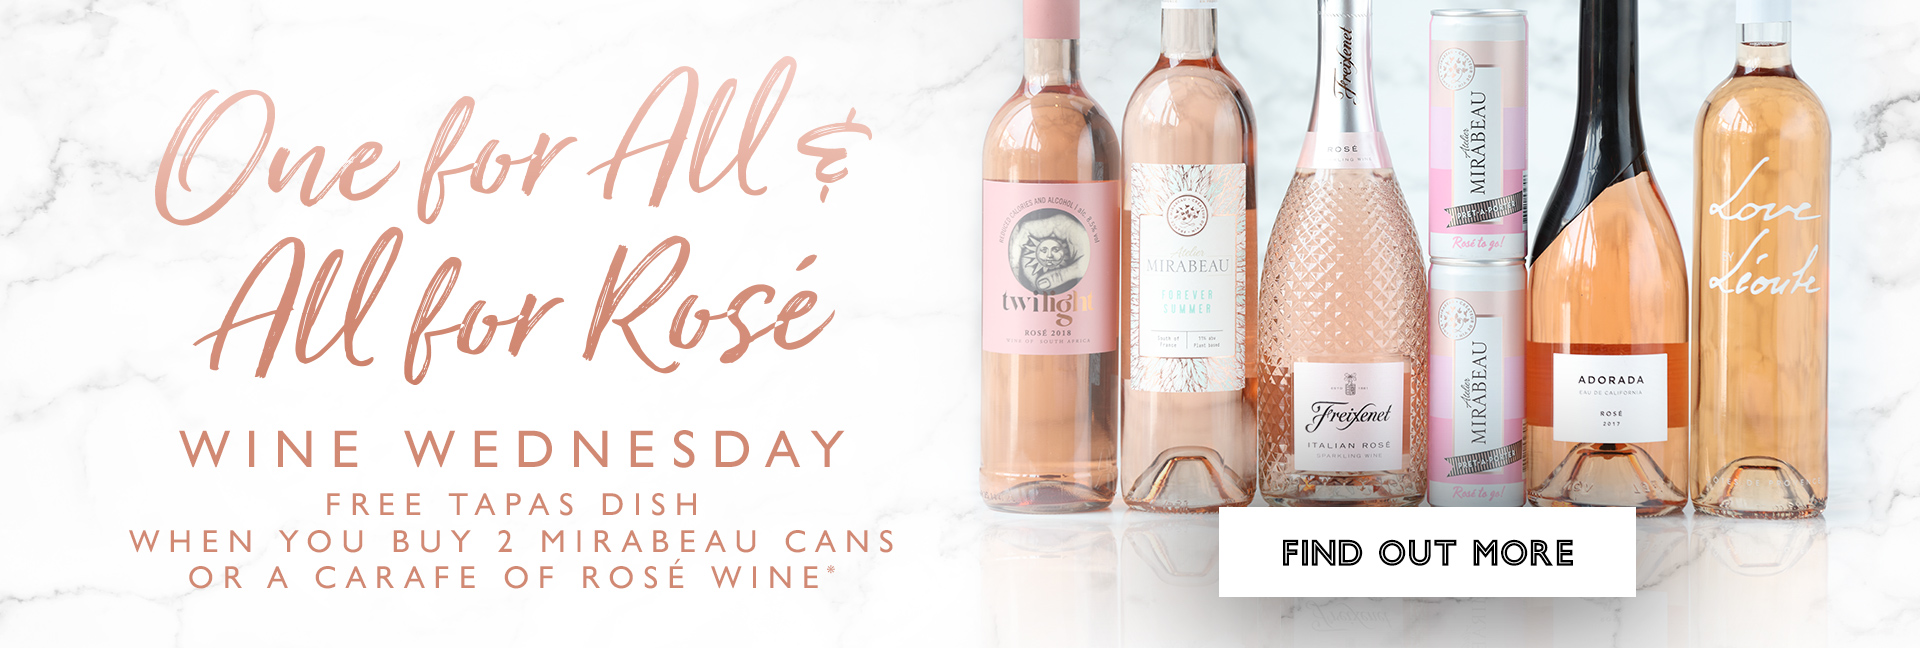 Wine Wednesdays at All Bar One Houndsditch